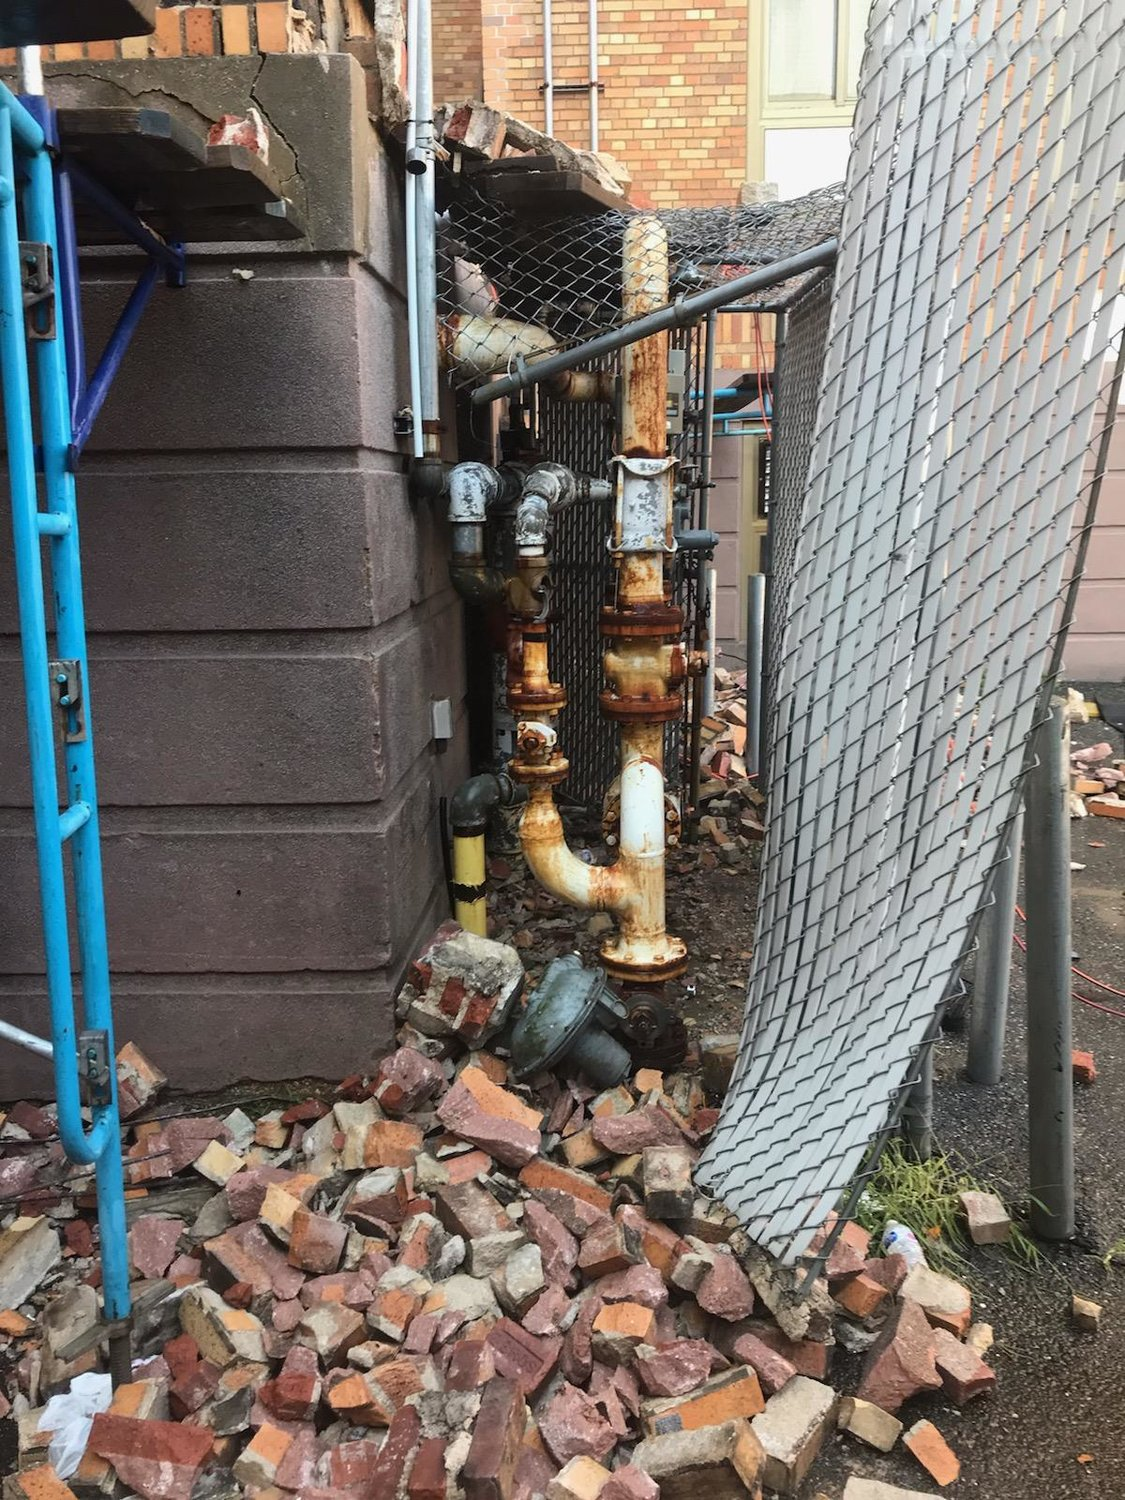 Fire officials reported that falling bricks due to construction had hit the gas regulator at the rear of the building, breaking it off and causing gas to spew out.